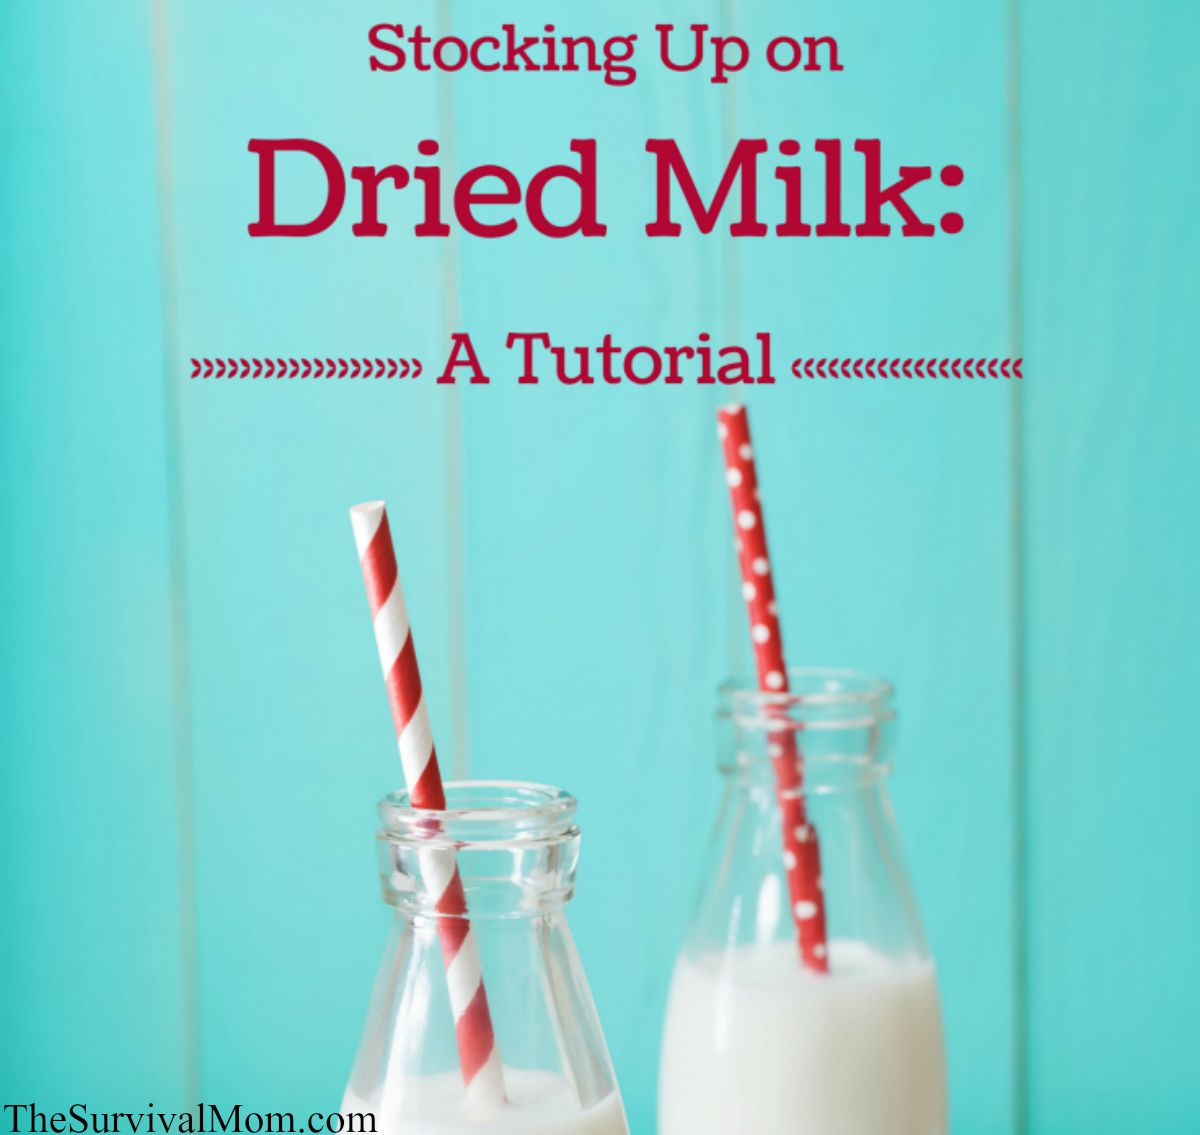 Stocking Up on dried milk